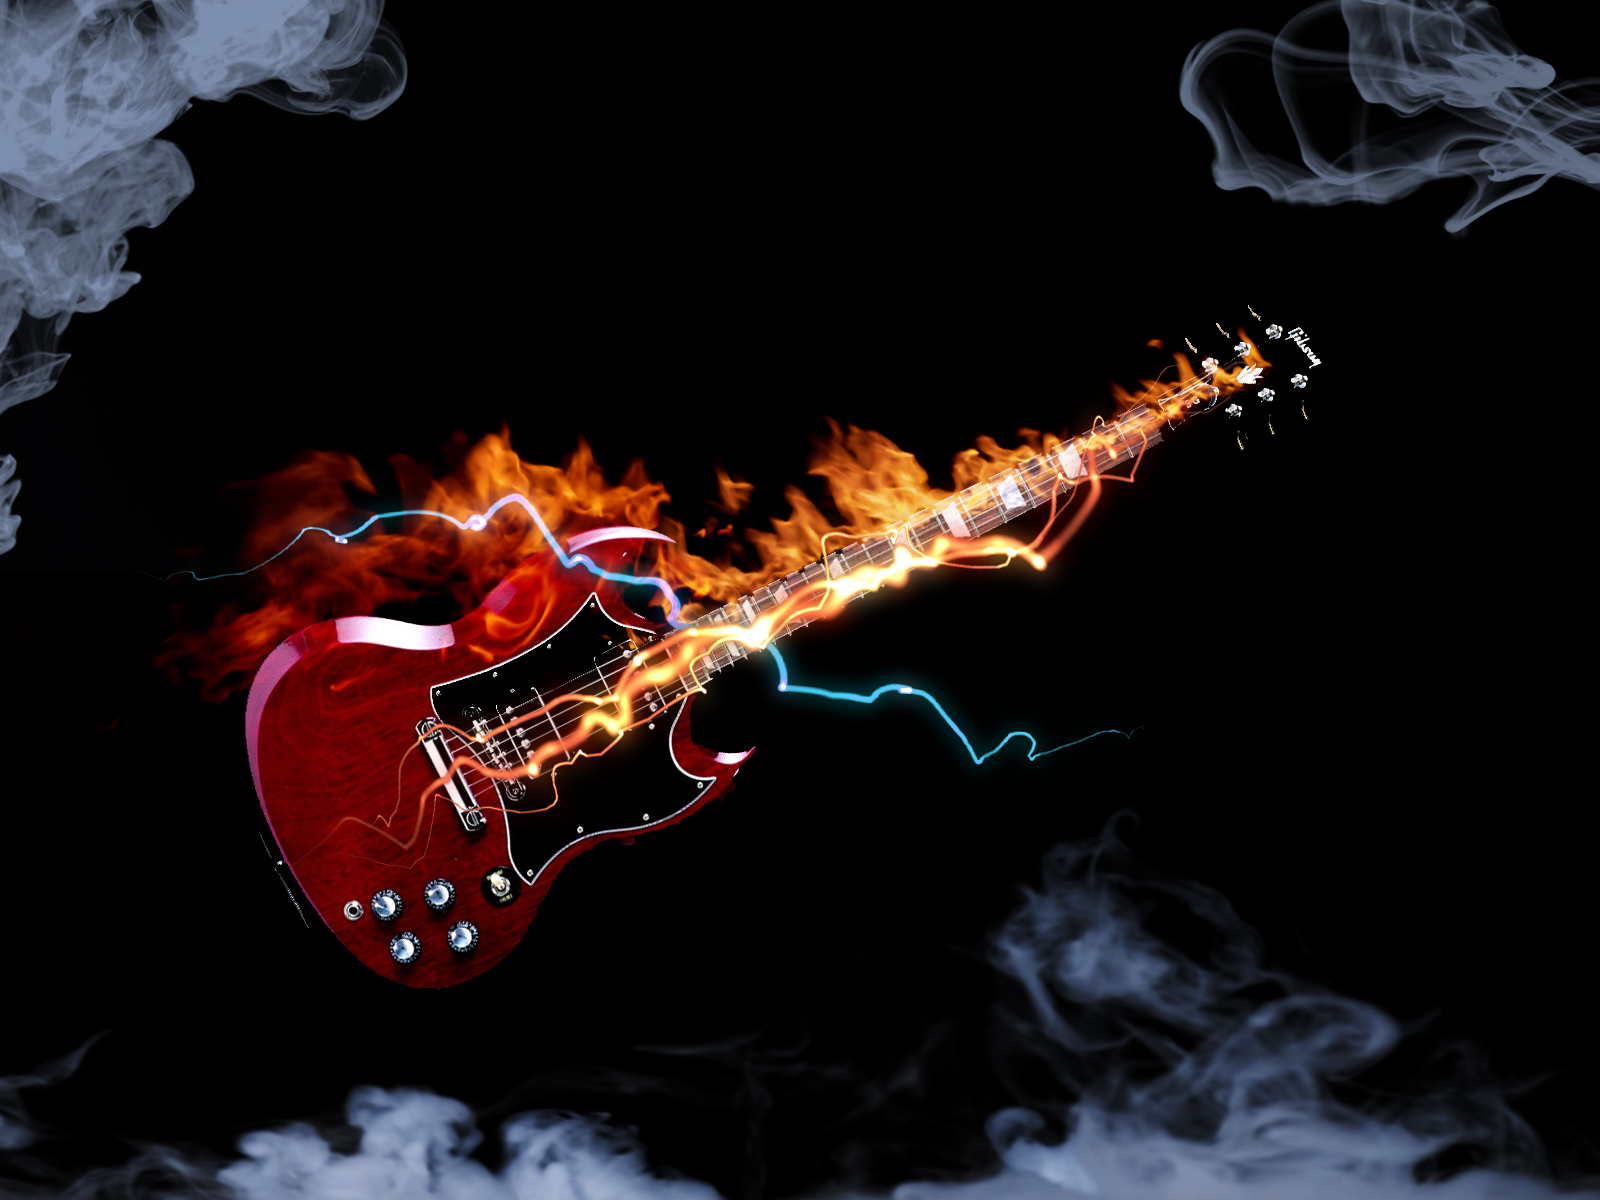 Gibson SG Wallpaper And Background Image